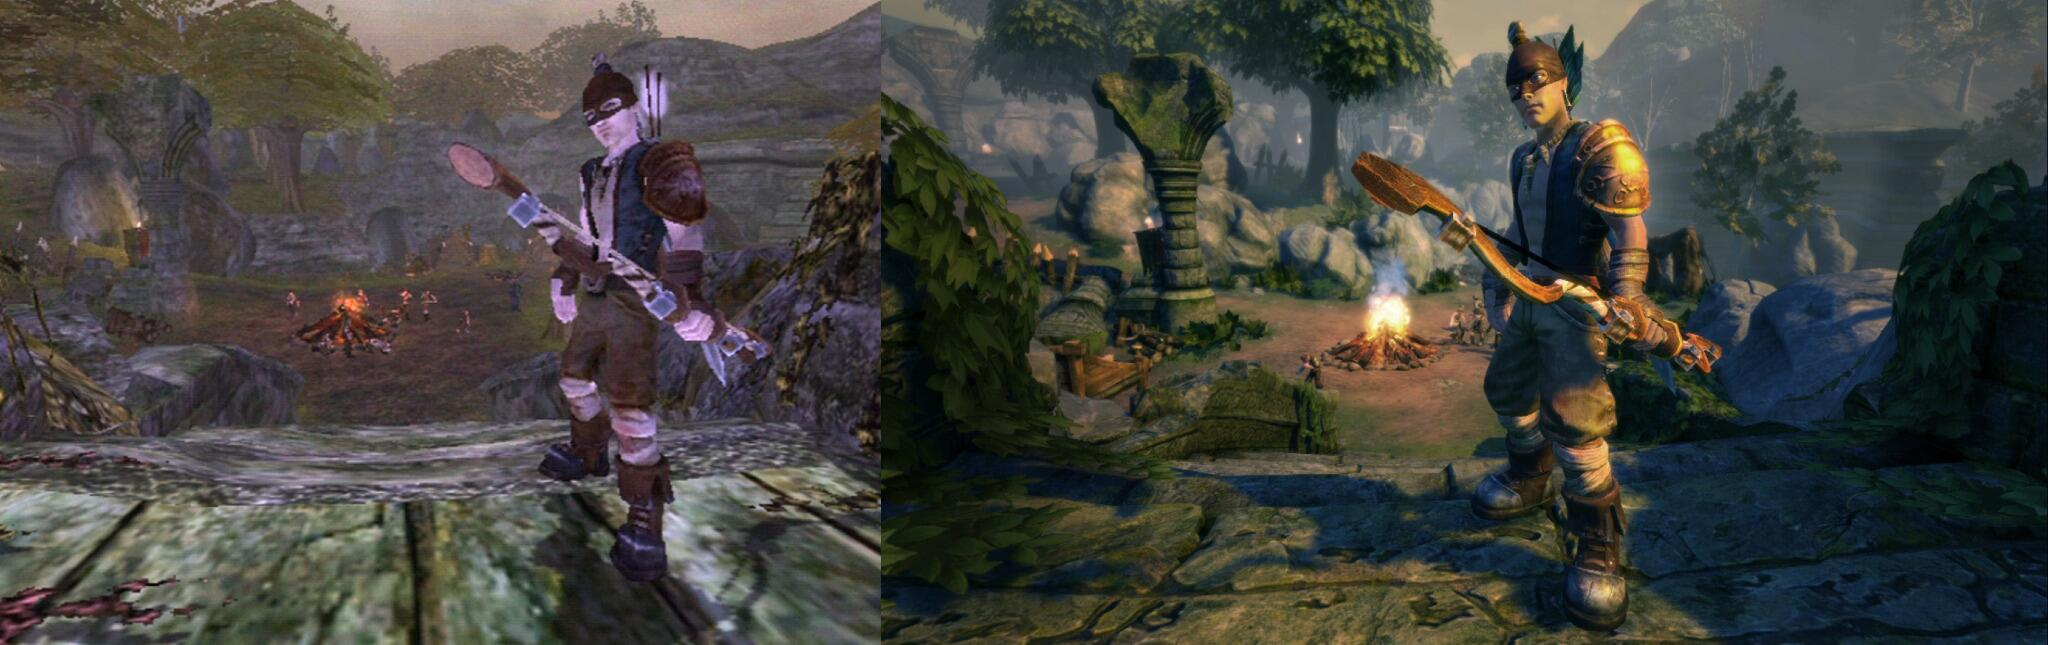 Post - Fable Anniversary - Remake HD de Fable para 360 -- 7 de Febrero 2014 BL6xCAsCEAATep8